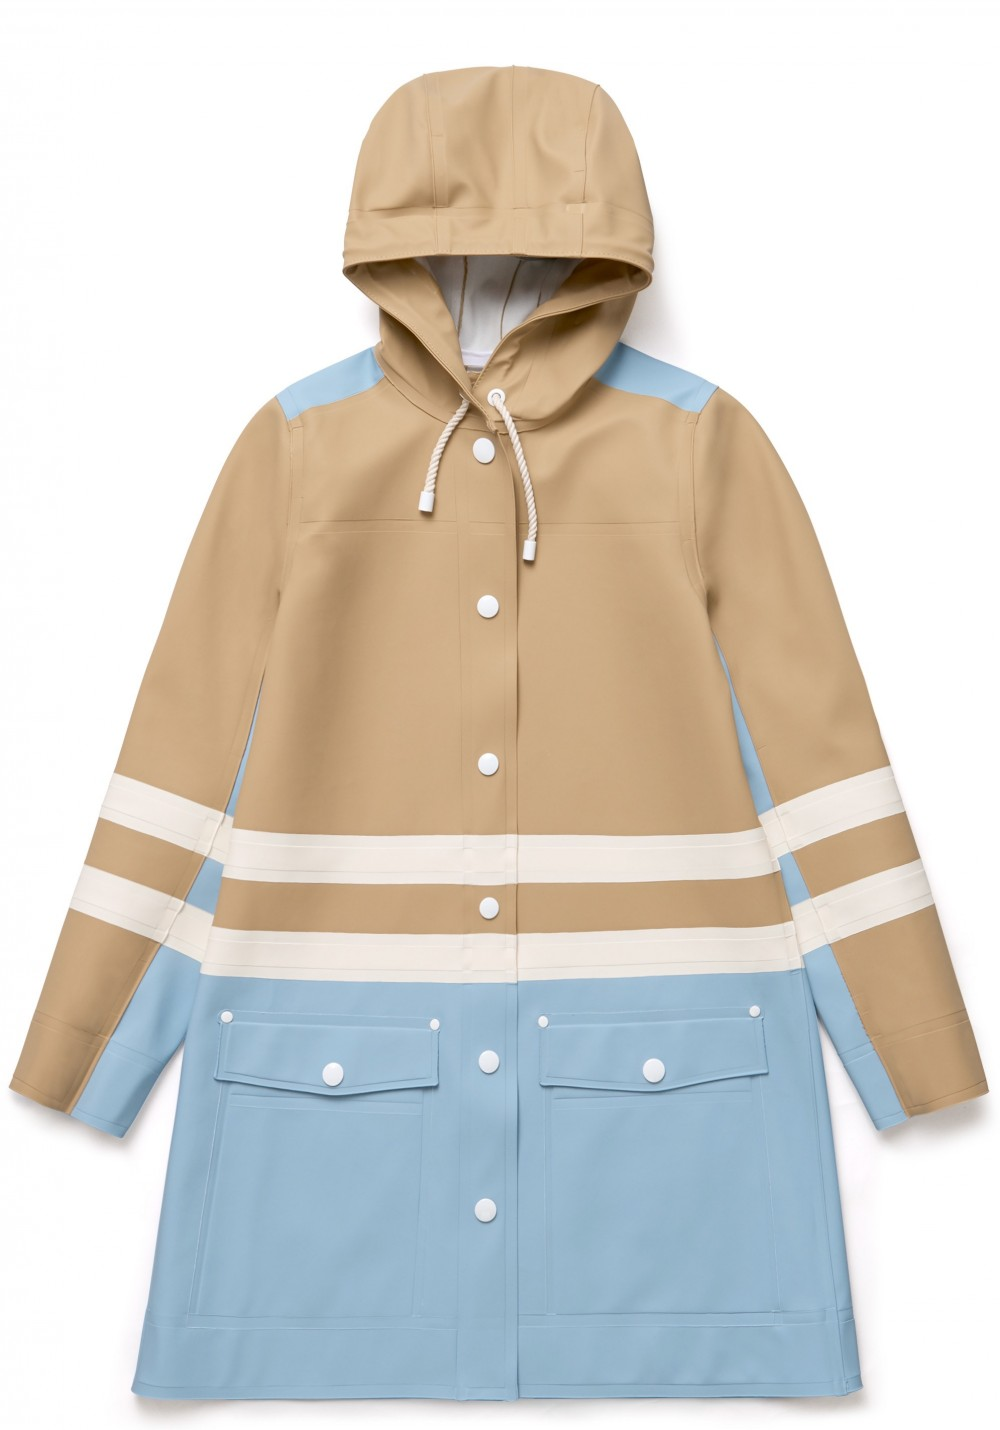 03 Stutterheim for Marni Spring18_Woman_StripeCoat_SandMulti_Product